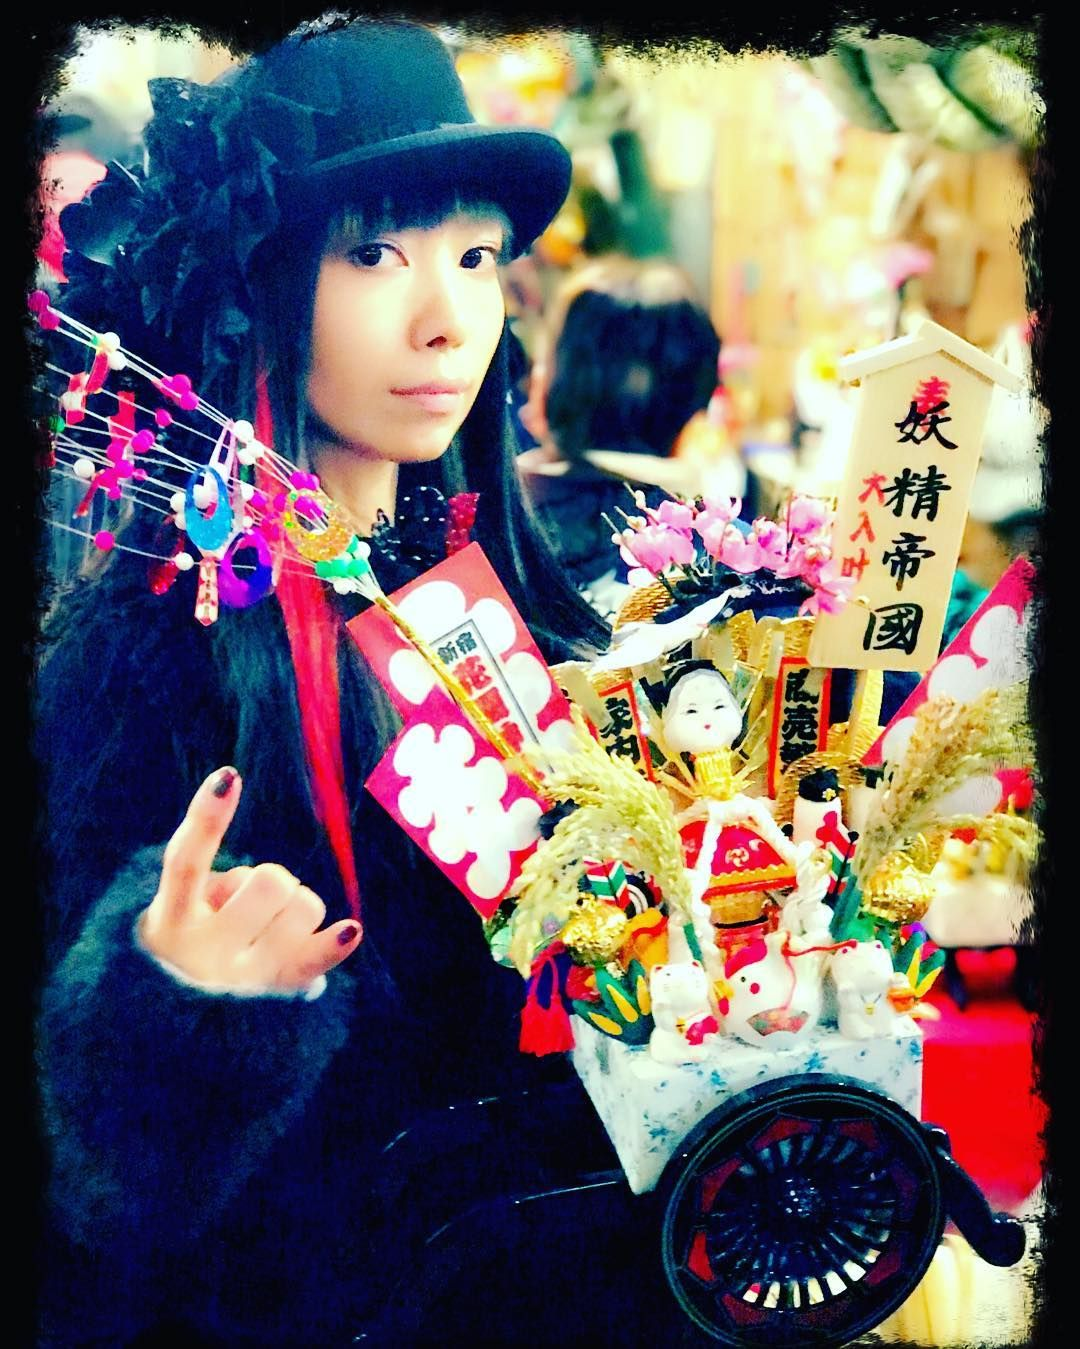 448 Likes, 15 Comments - 終身独裁官ゆい (@yui_dictator) on ...